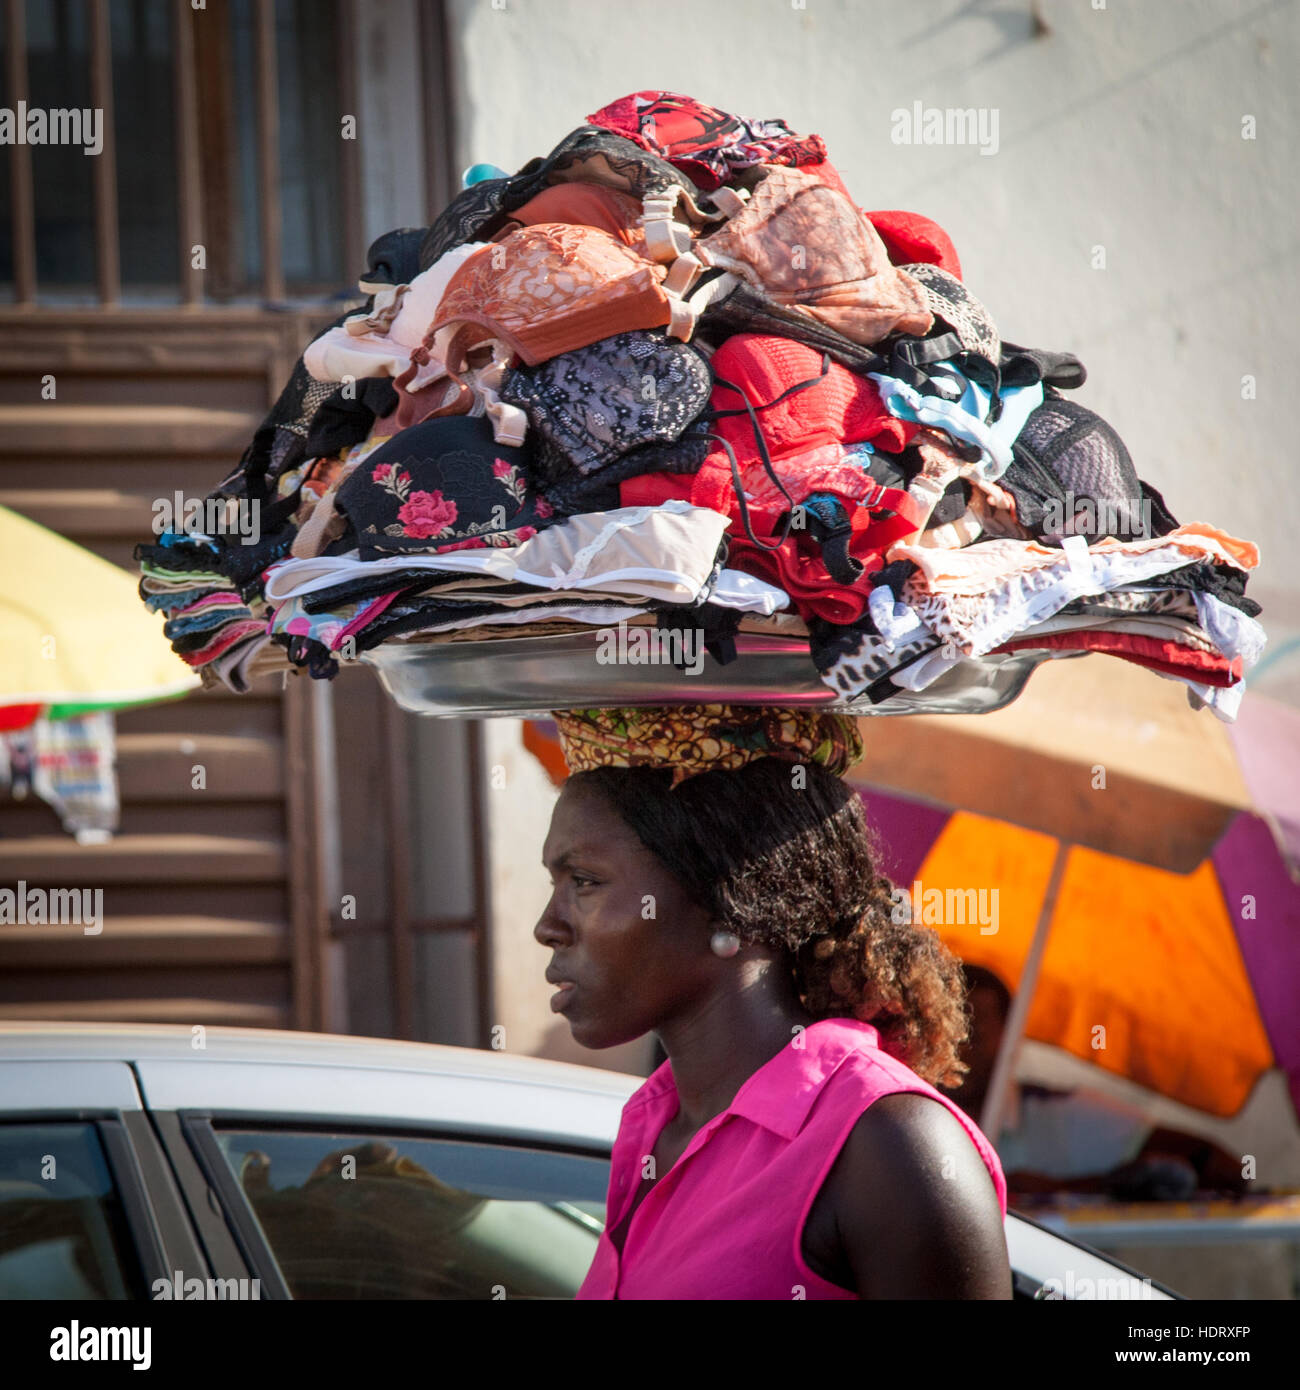 Woman carrying a tray full of bras on her head Stock Photo